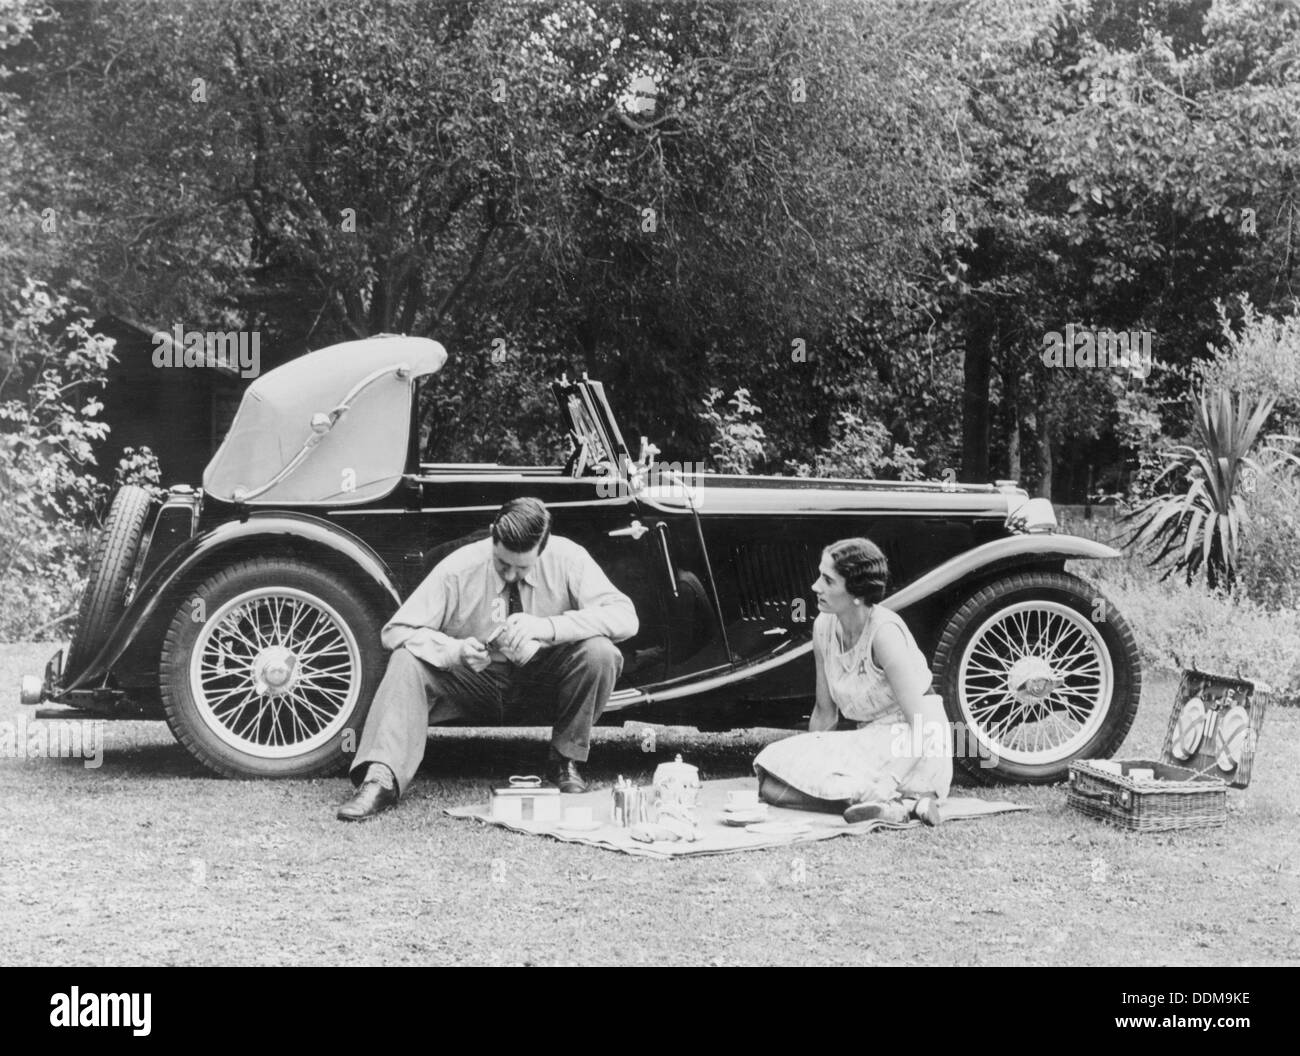 Couple having a picnic by an MG TA Midget, late 1930s. - Stock Image